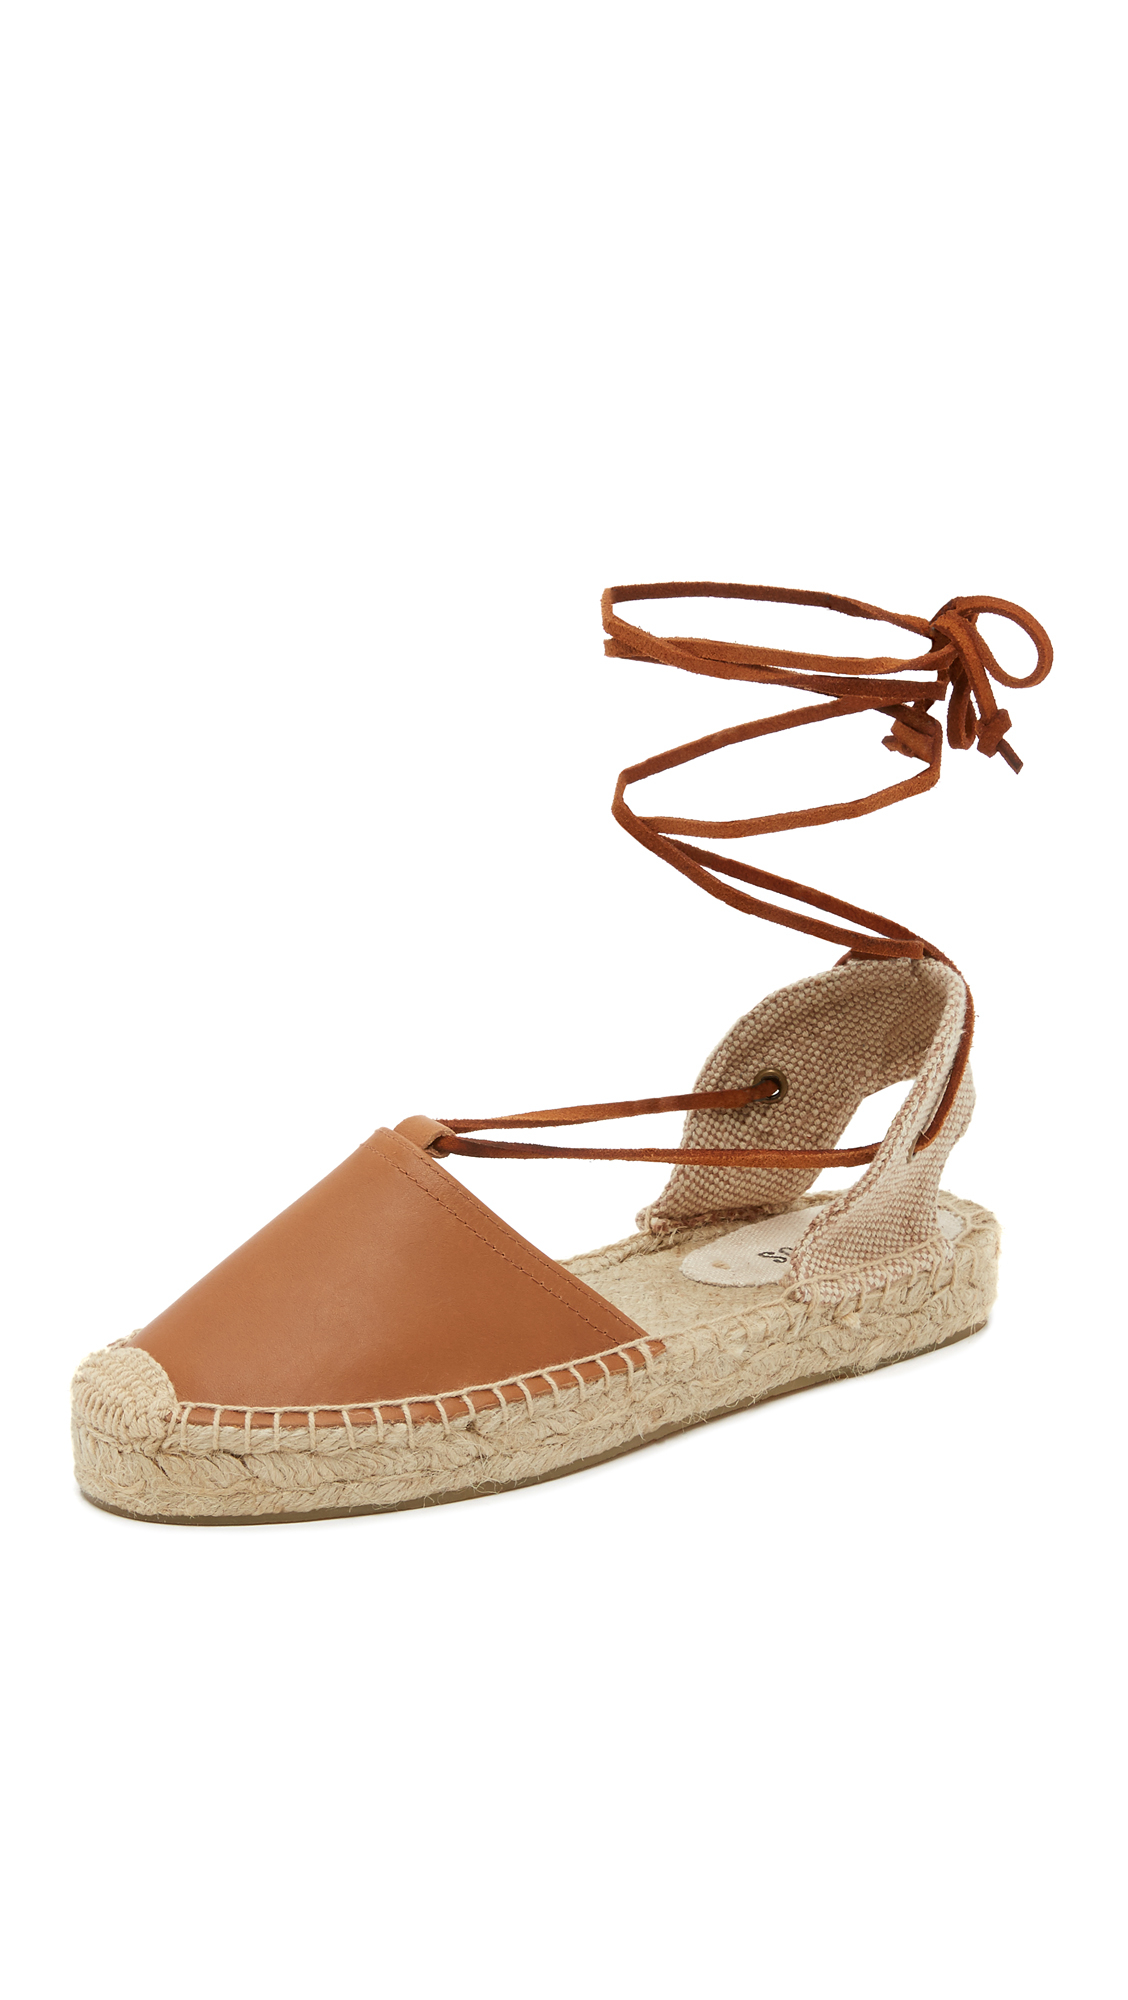 Soludos Women's Lace-Up Espadrille Sandal